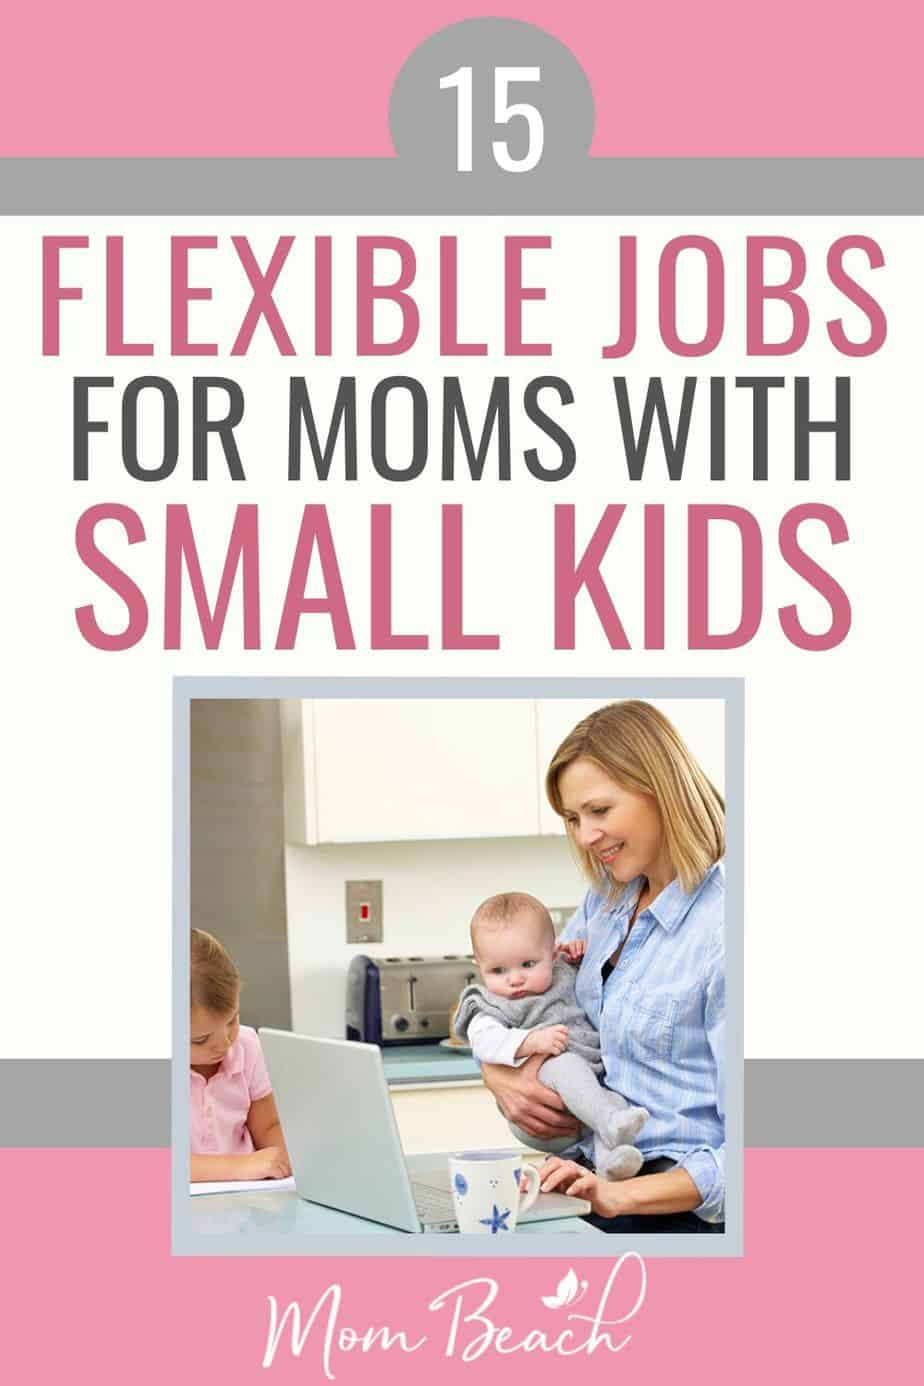 You won't believe how easy these 15 flexible jobs are! If you are a mom with a small kid, then you will love these flexible jobs for moms. They require no experience or degree at all. Work from home in your spare time with these 15 flexible jobs right now! They are perfect for stay at home moms who want to earn extra money from home. #flexiblejobsformoms #stayathomemomjobs #momjobs #workfromhome #makemoneyfromhome #onlinejobs #onlinejobsformoms #jobsformomswithsmallkids